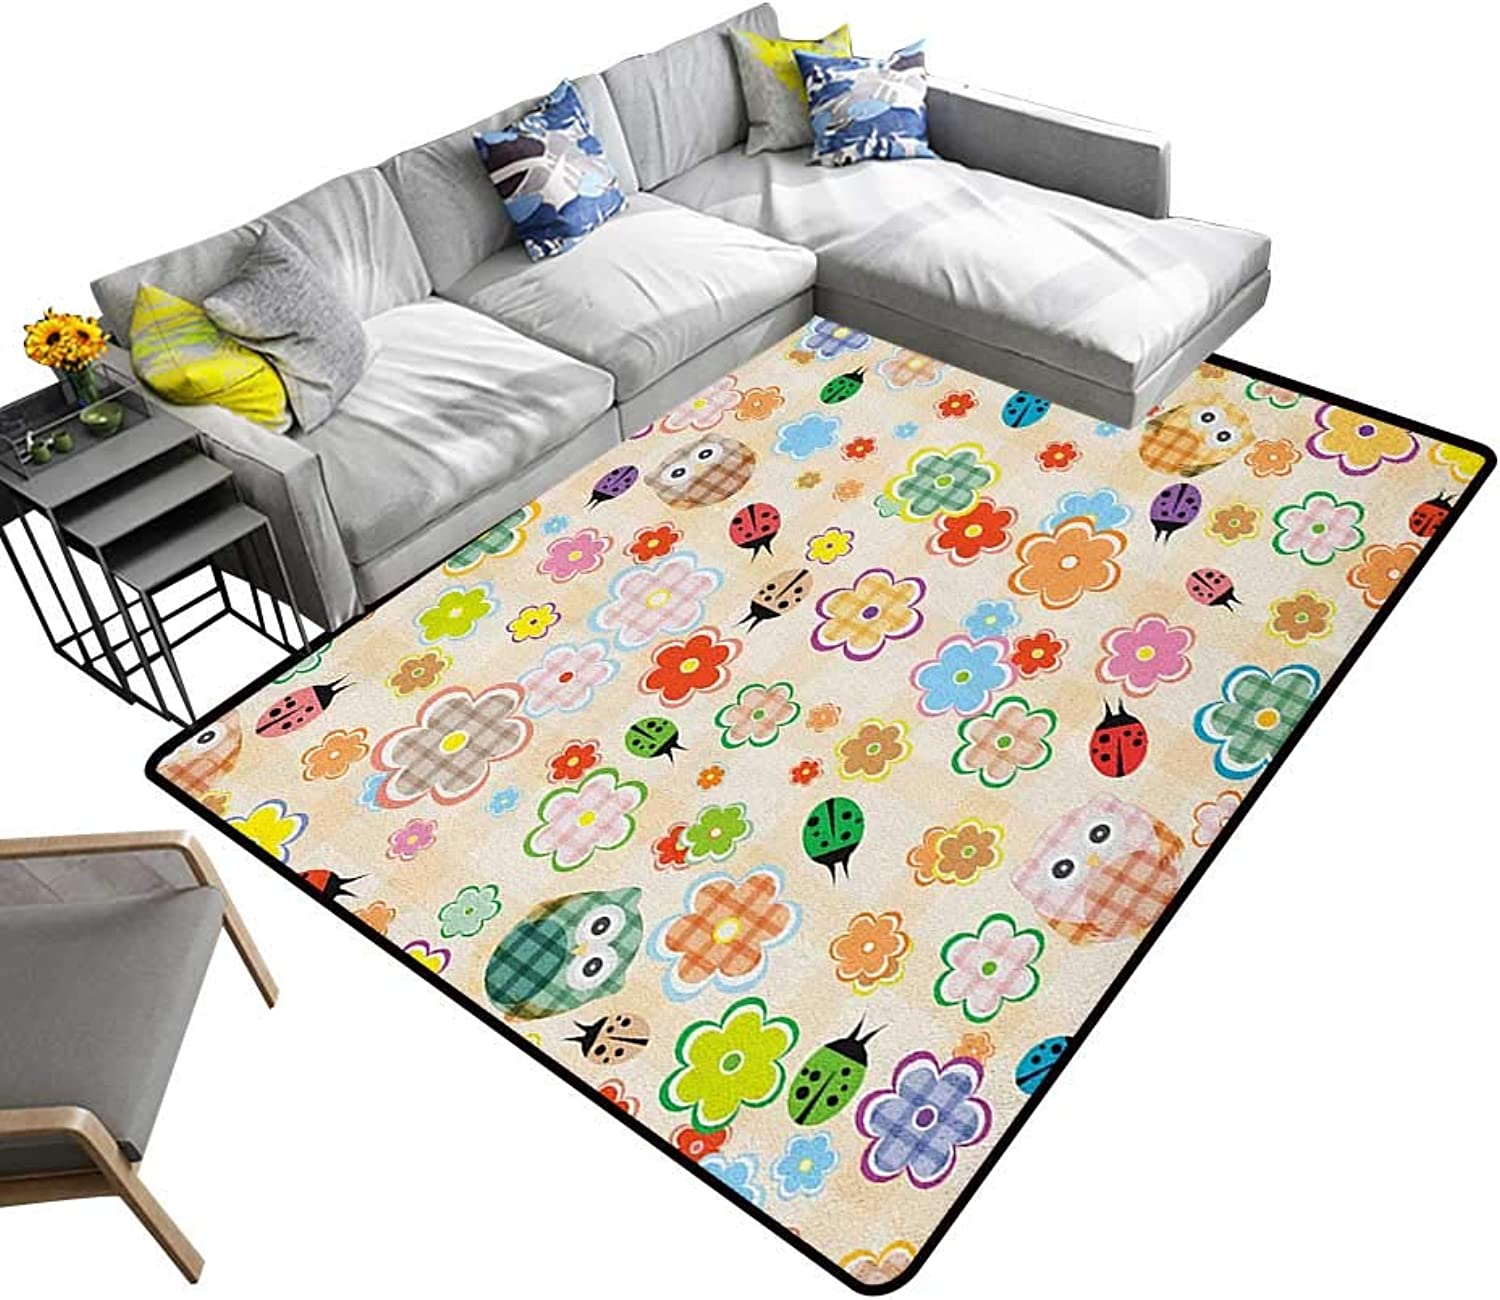 Nursery Indoor Floor mat Cute Owls and Flowers in colorful Drawing Style Nature Animal and Plant Life Fun 70 x82 ,Can be Used for Floor Decoration